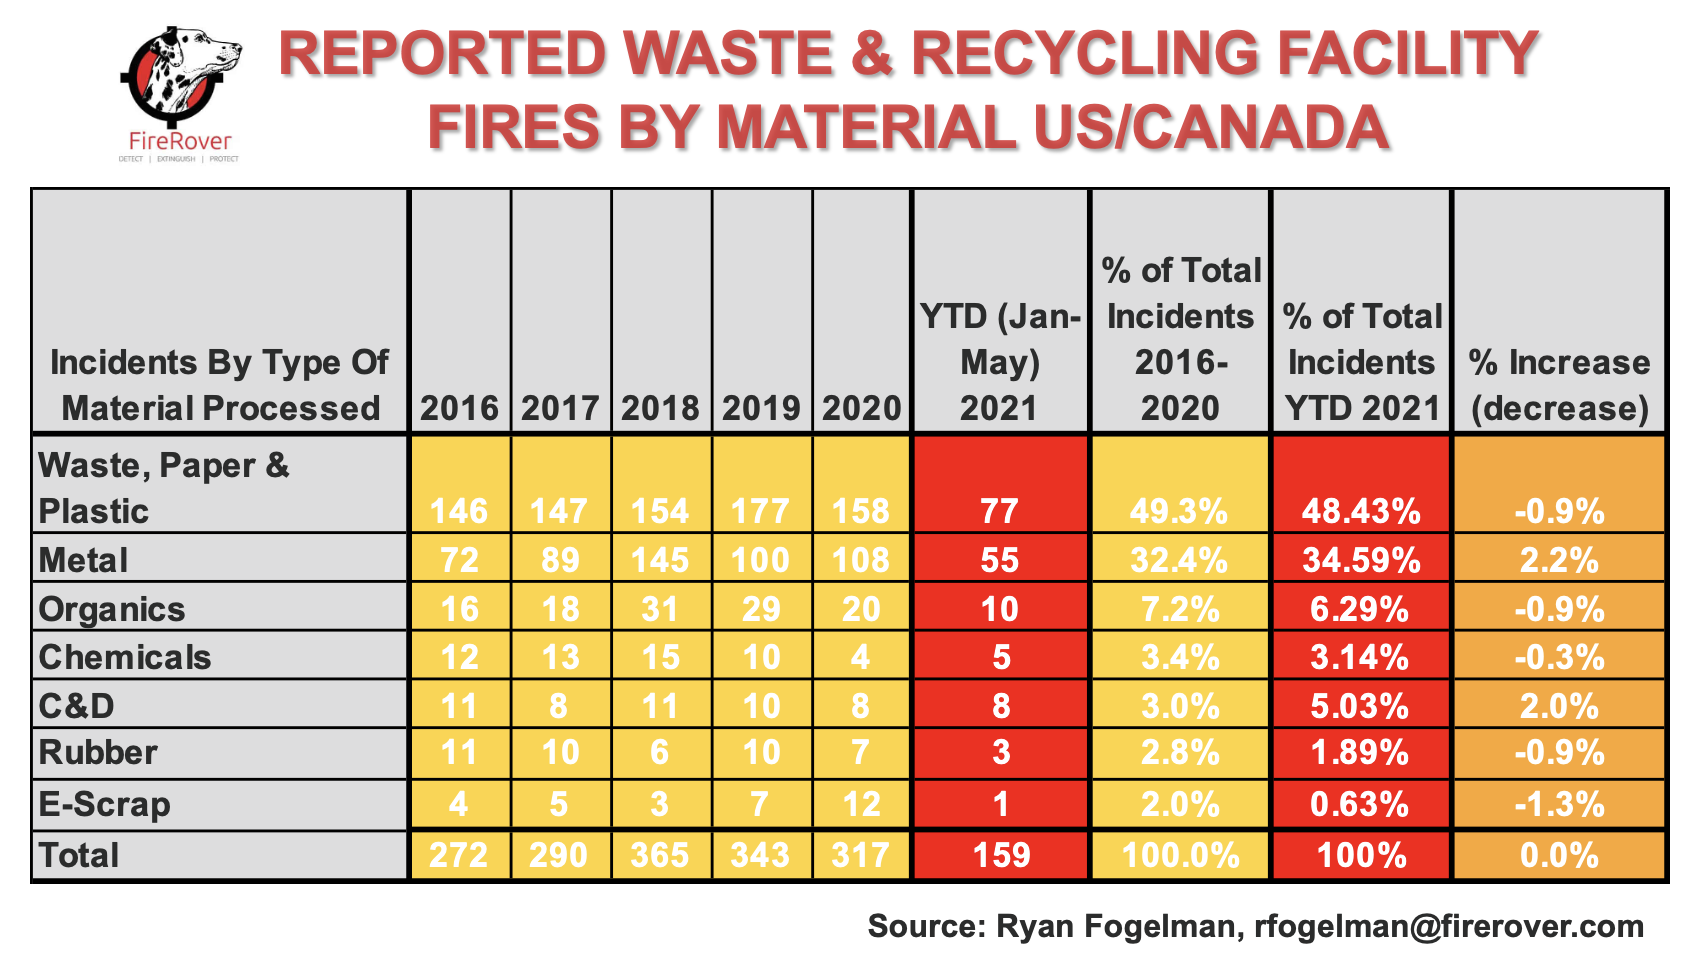 Trend of waste fires and material recycling vs.